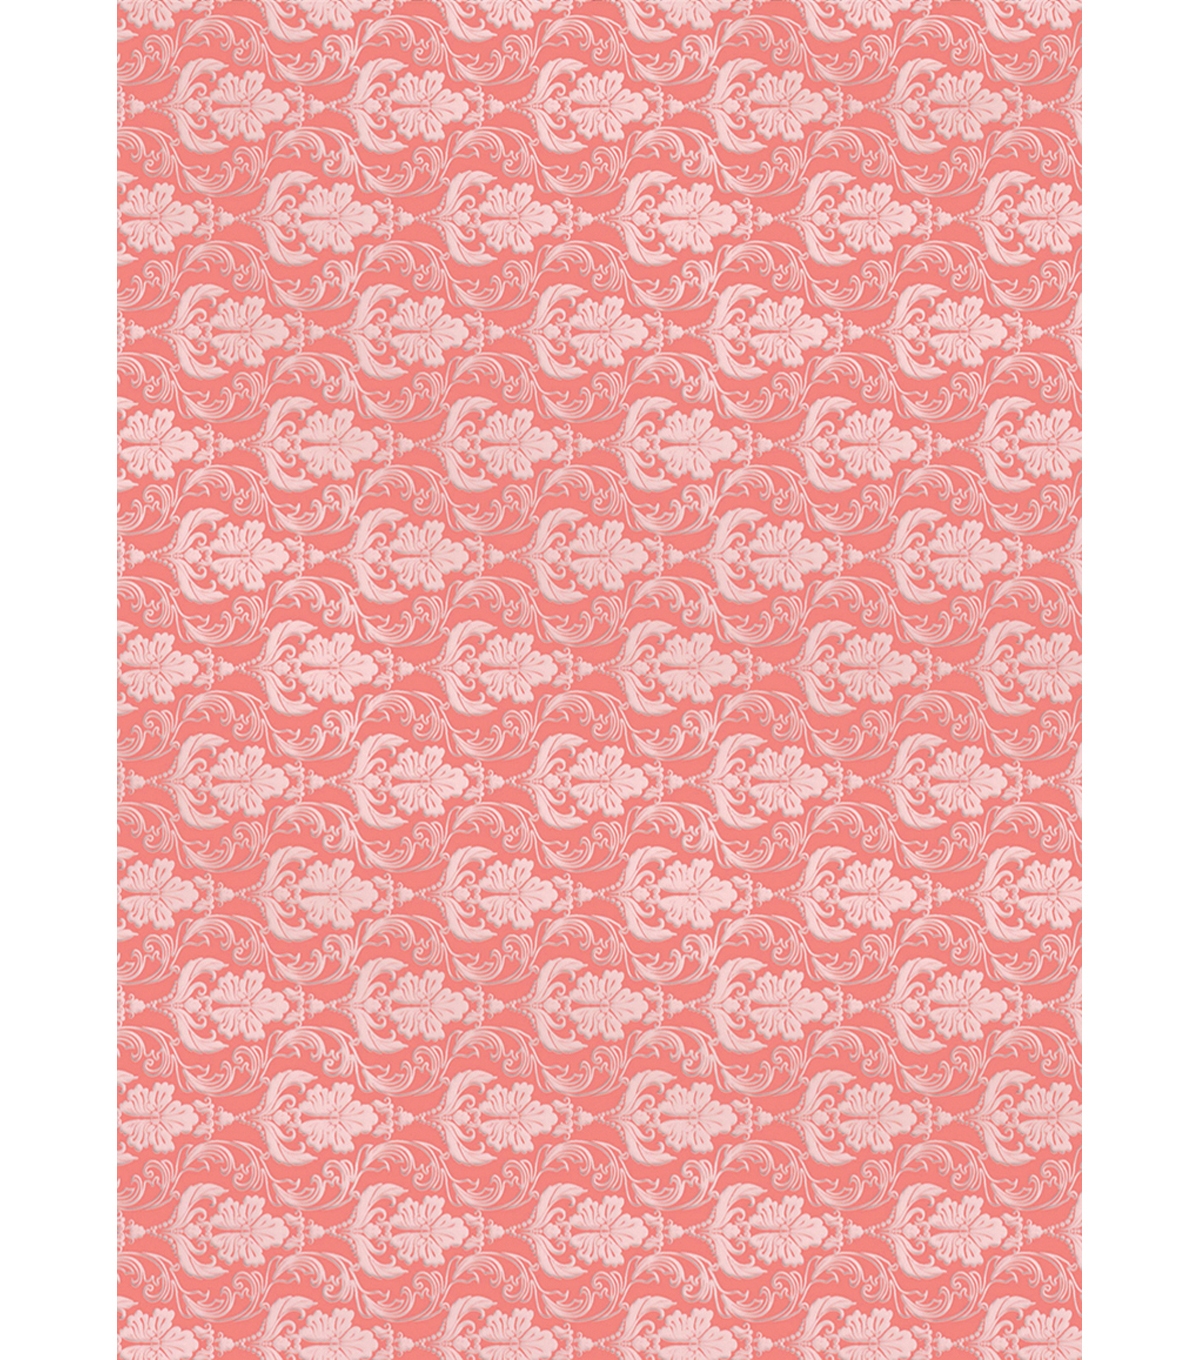 Kanban The Mitford Collection Hvywt Bkrnd Card Sheet-Filigree Coral